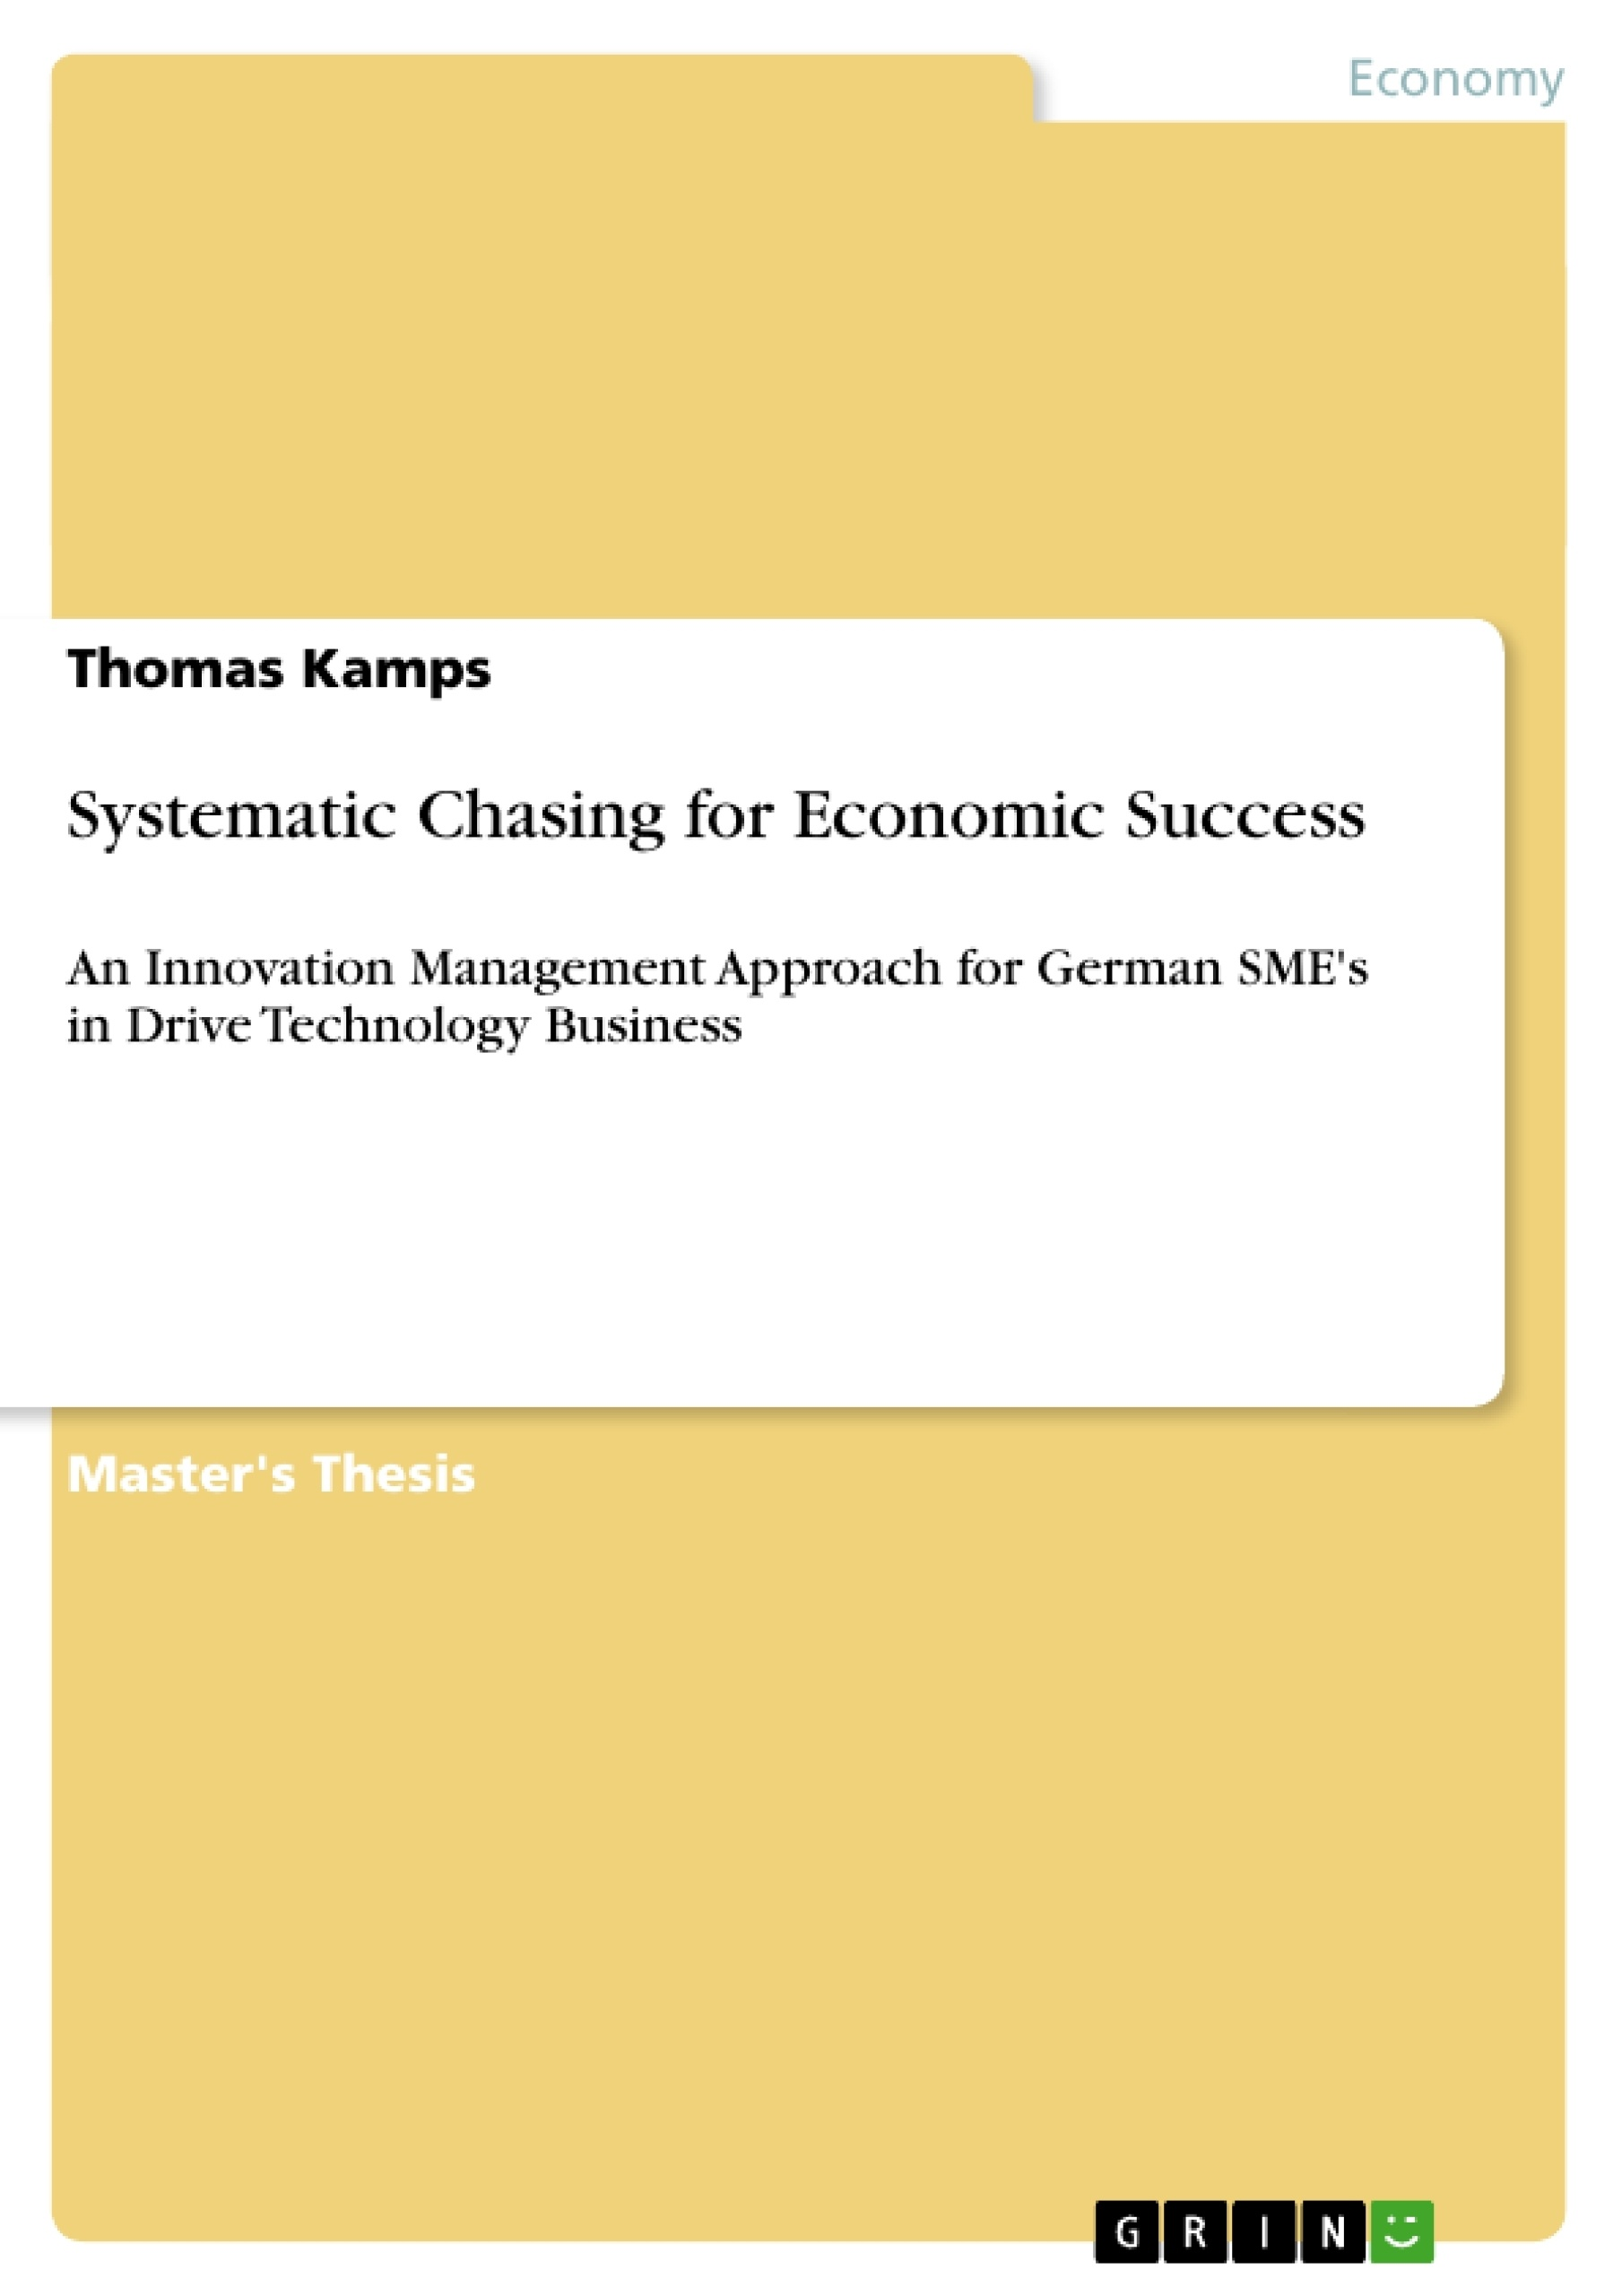 Title: Systematic Chasing for Economic Success